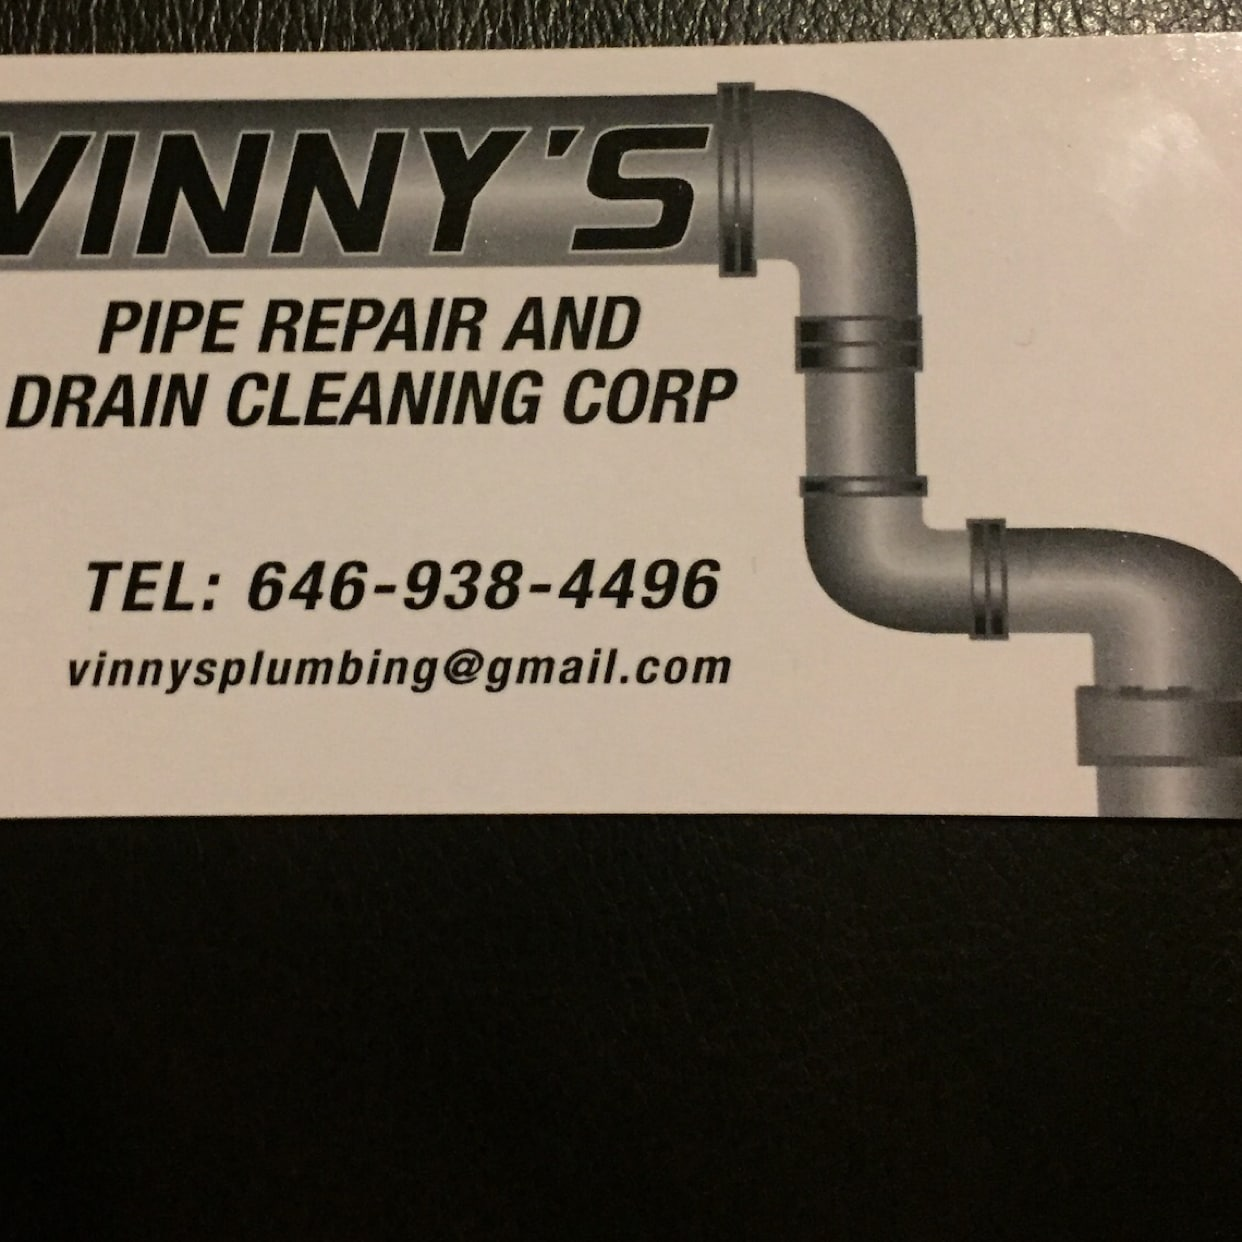 Vinny's Pipe Repair Drain Cleaning Corp